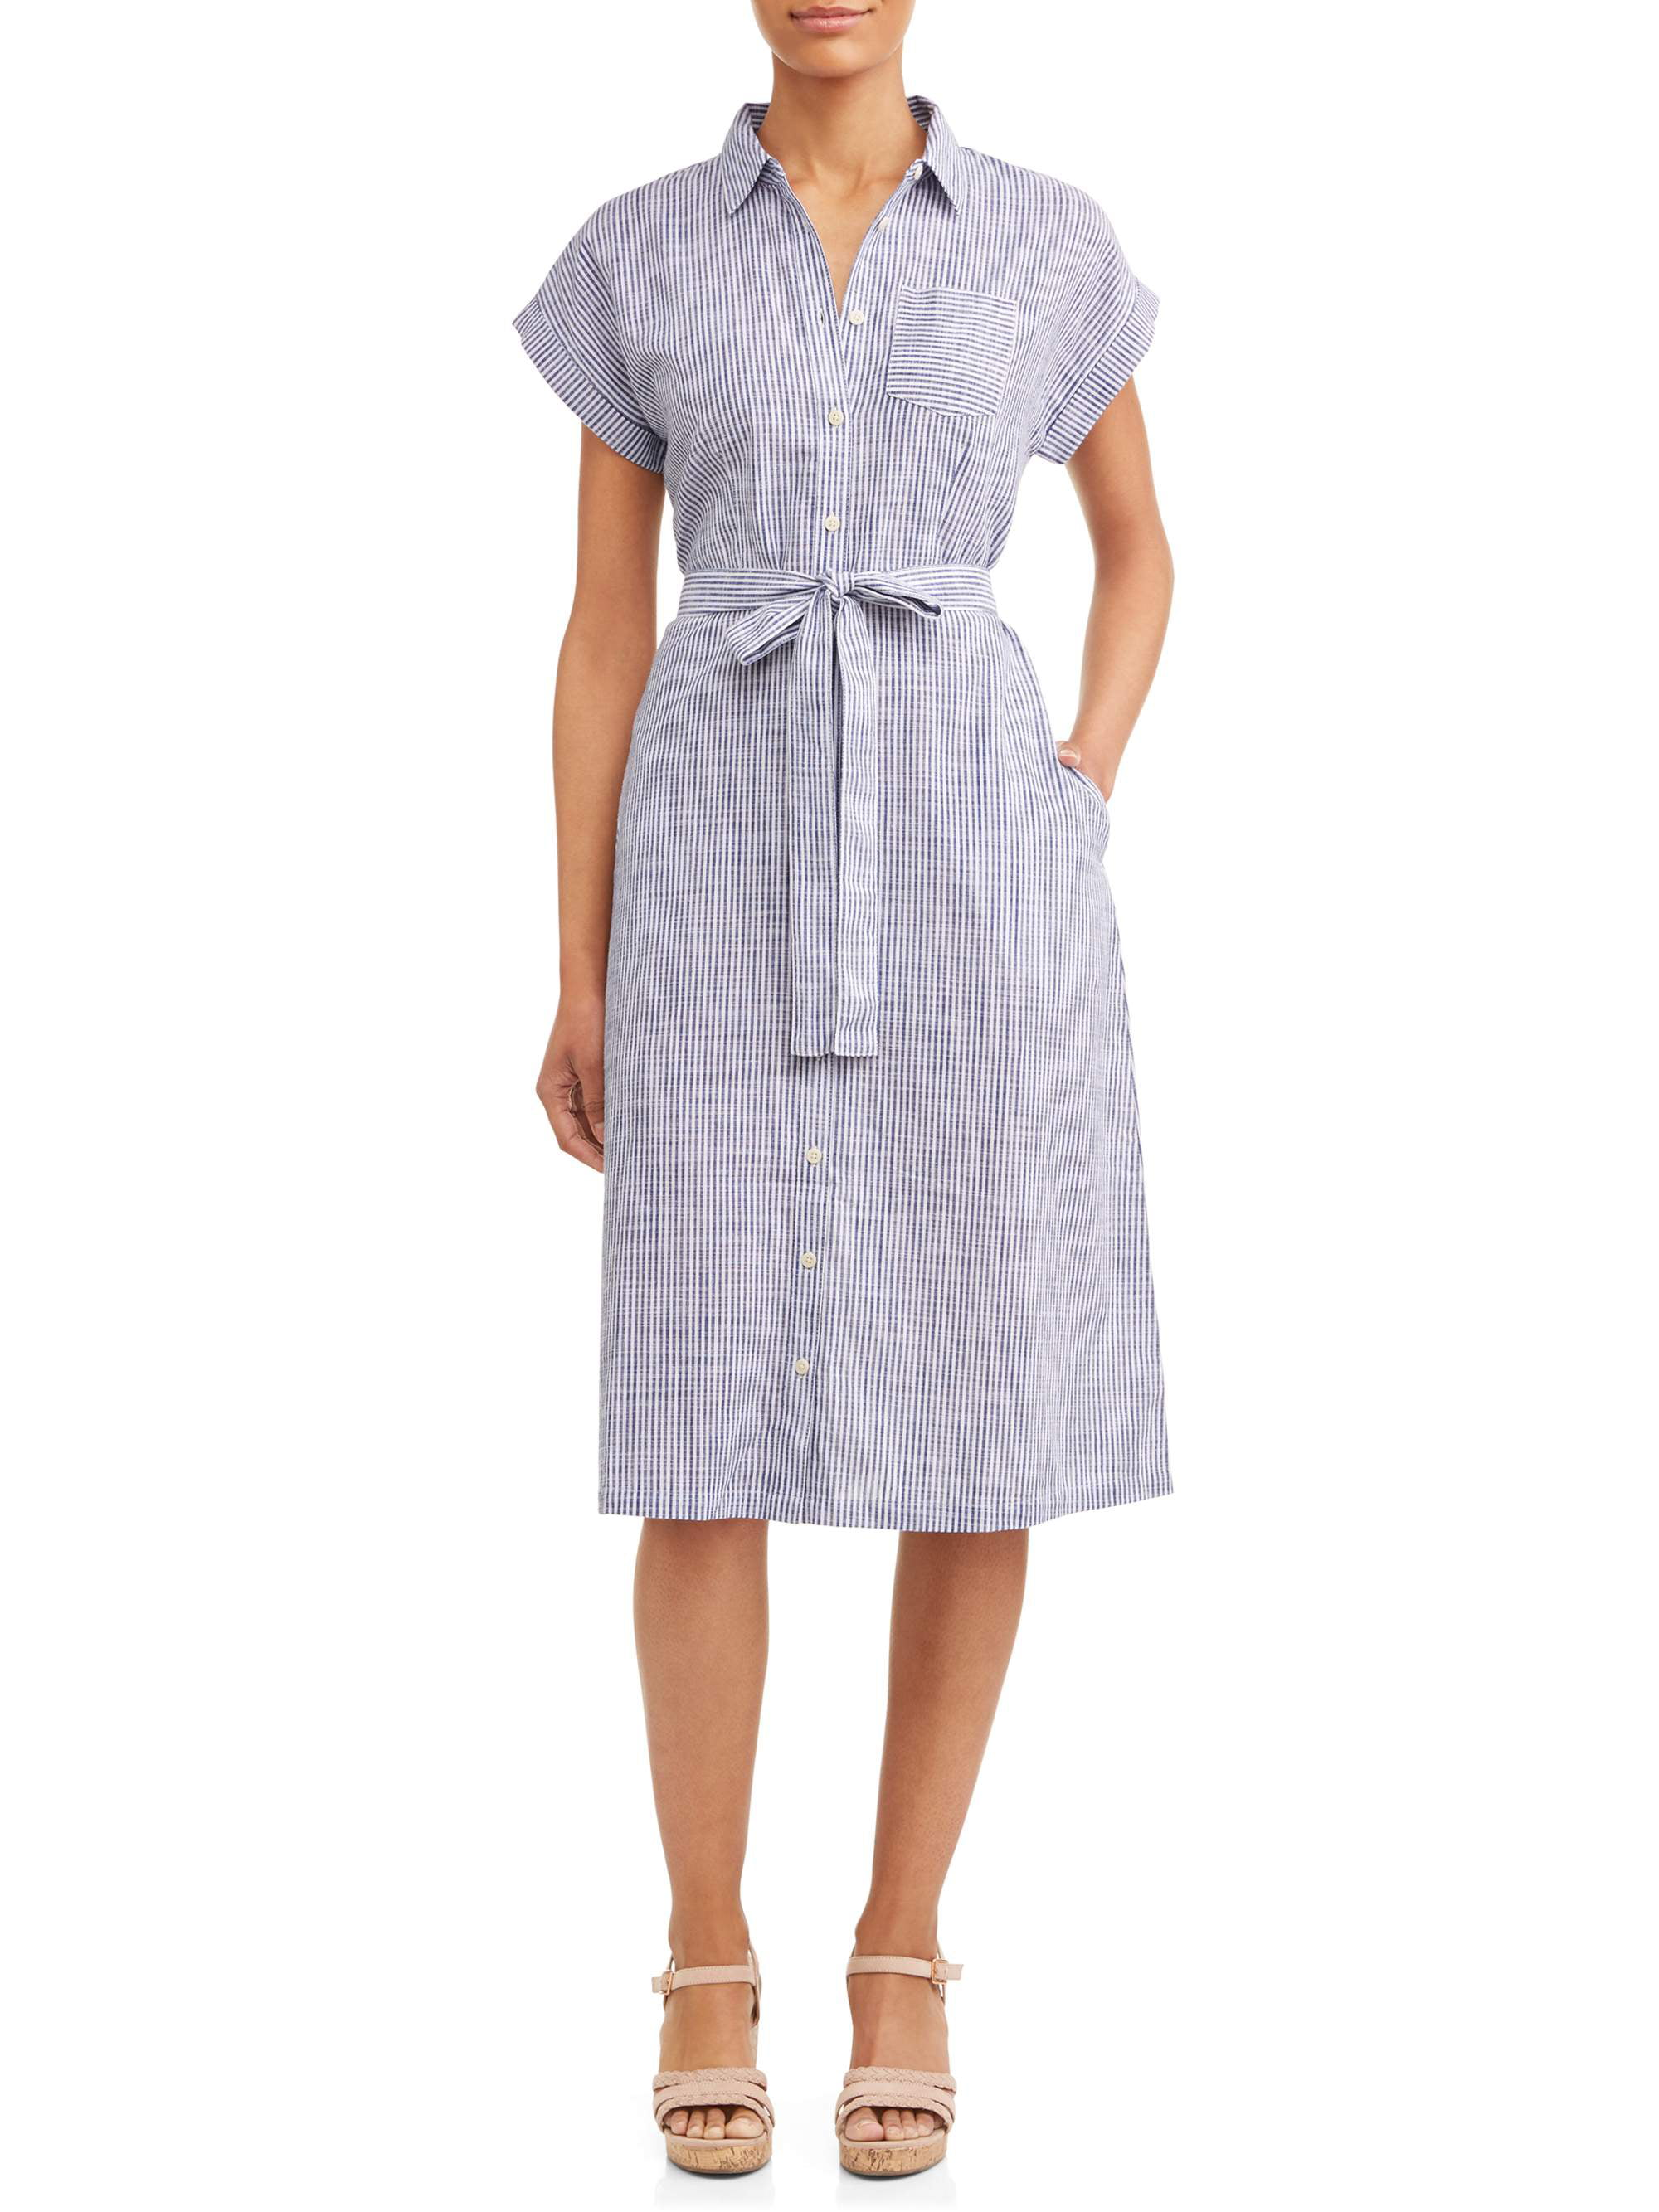 6260be4bc30 Women s Belted Midi Shirt Dress with Pocket - Walmart.com